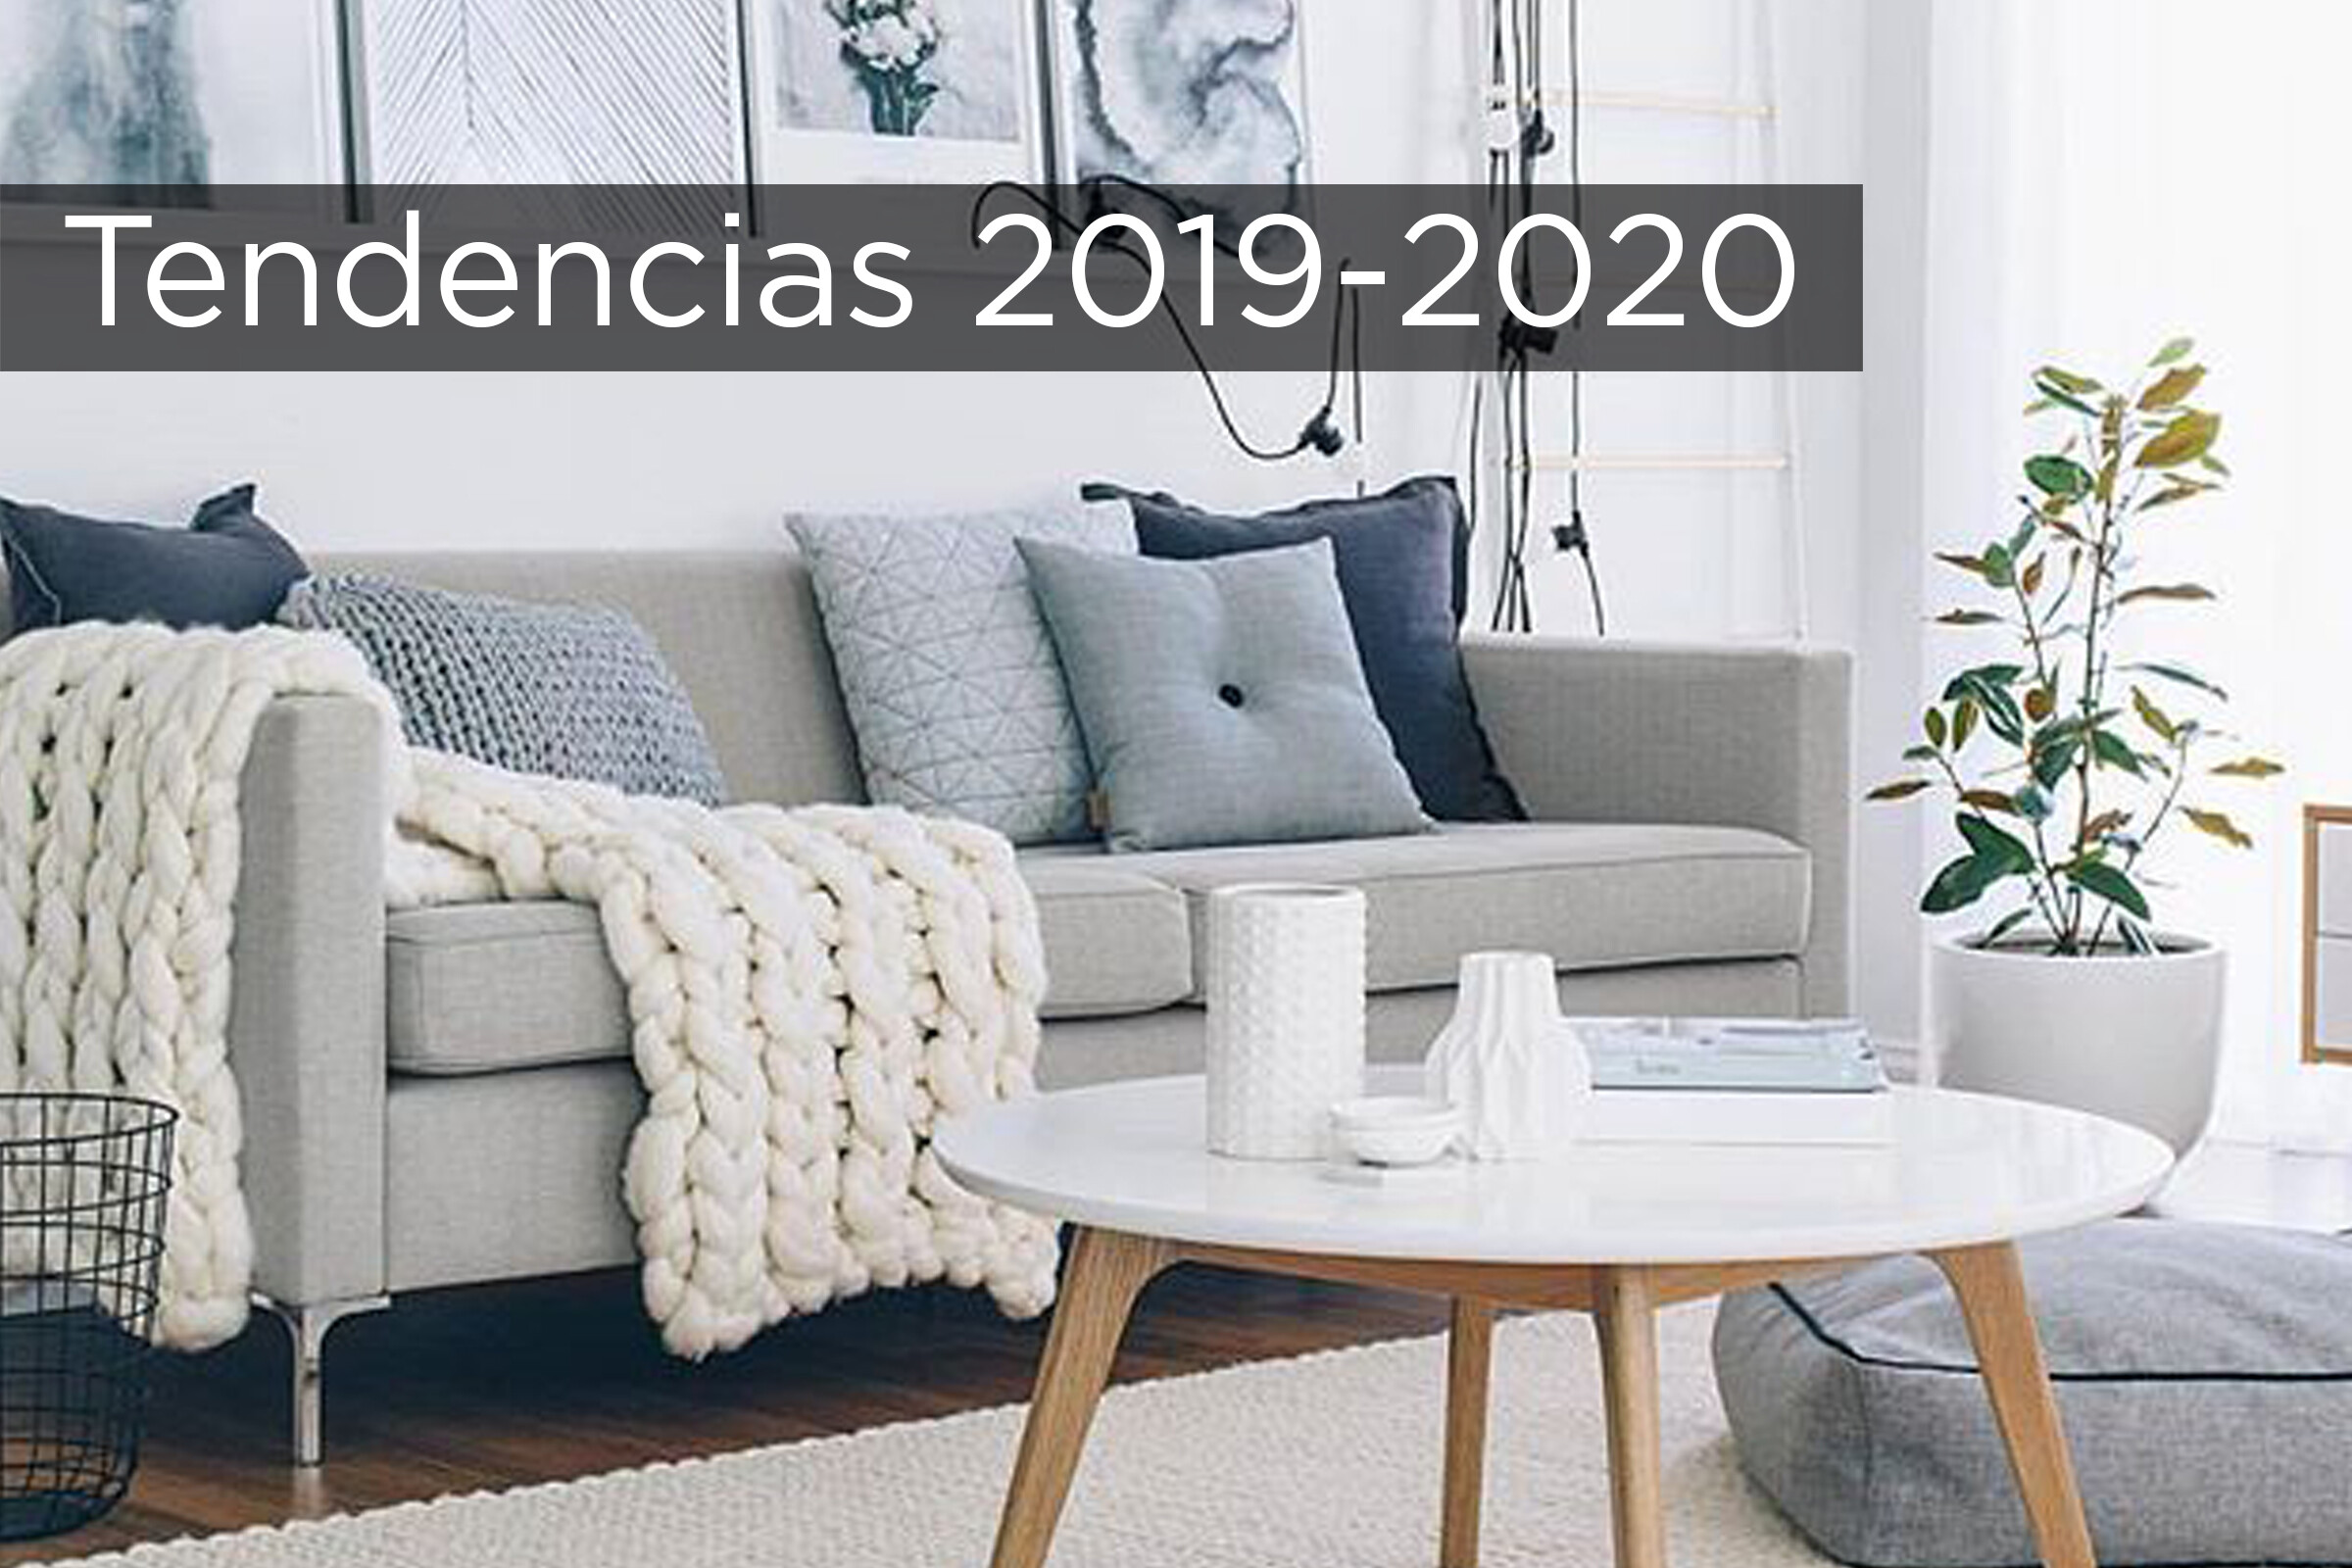 Tendencias 2019 2020